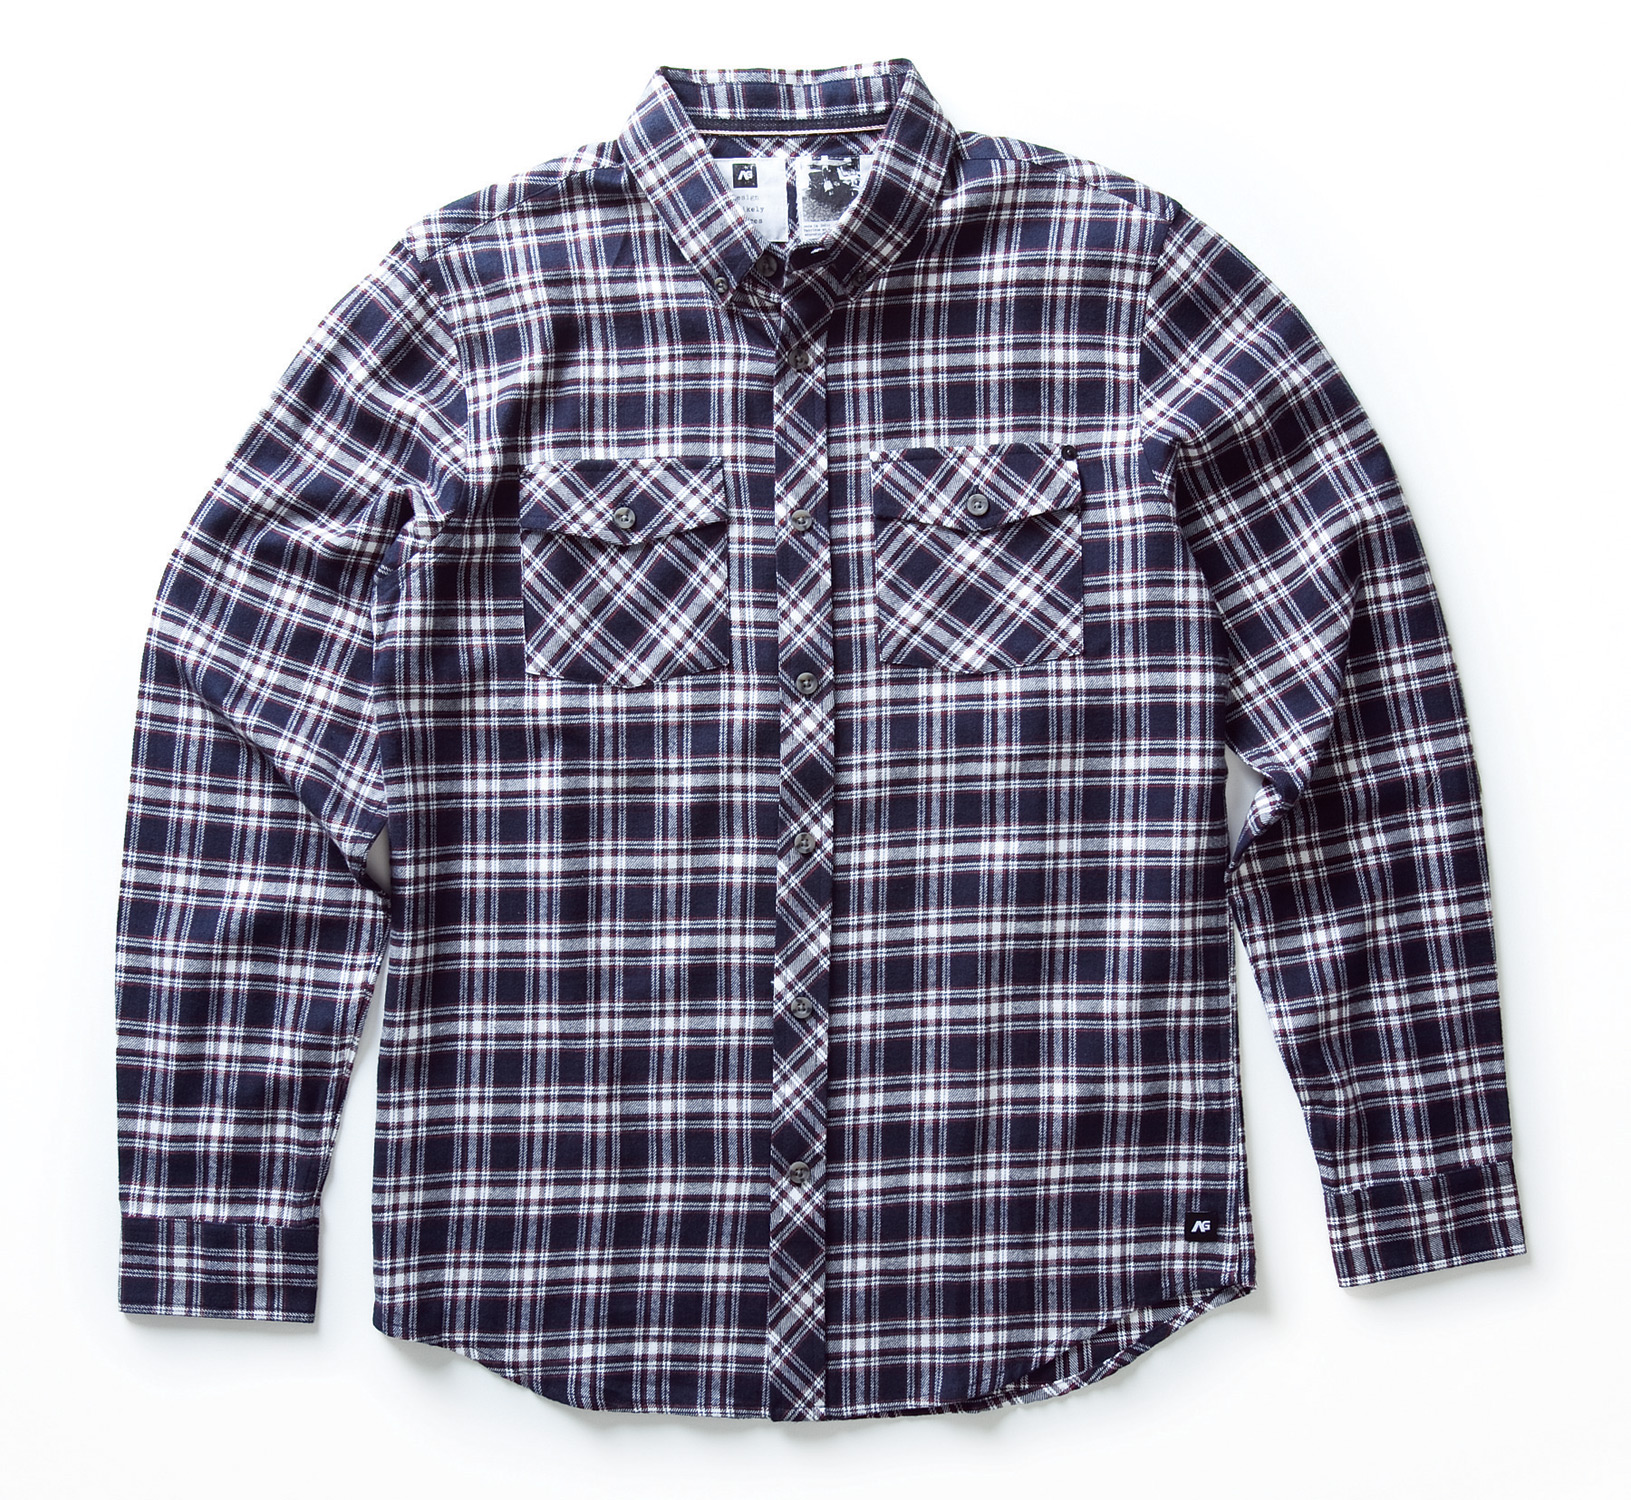 Guns and Military Key Features of the Analog Big Time L/S Flannel Shirt: Slim fit button front flannel shirt Double flap bias cut pockets Denim selvage taping detail at inner neck Classic small scale brushed plaid with soft hand wash 100% cotton - $31.95